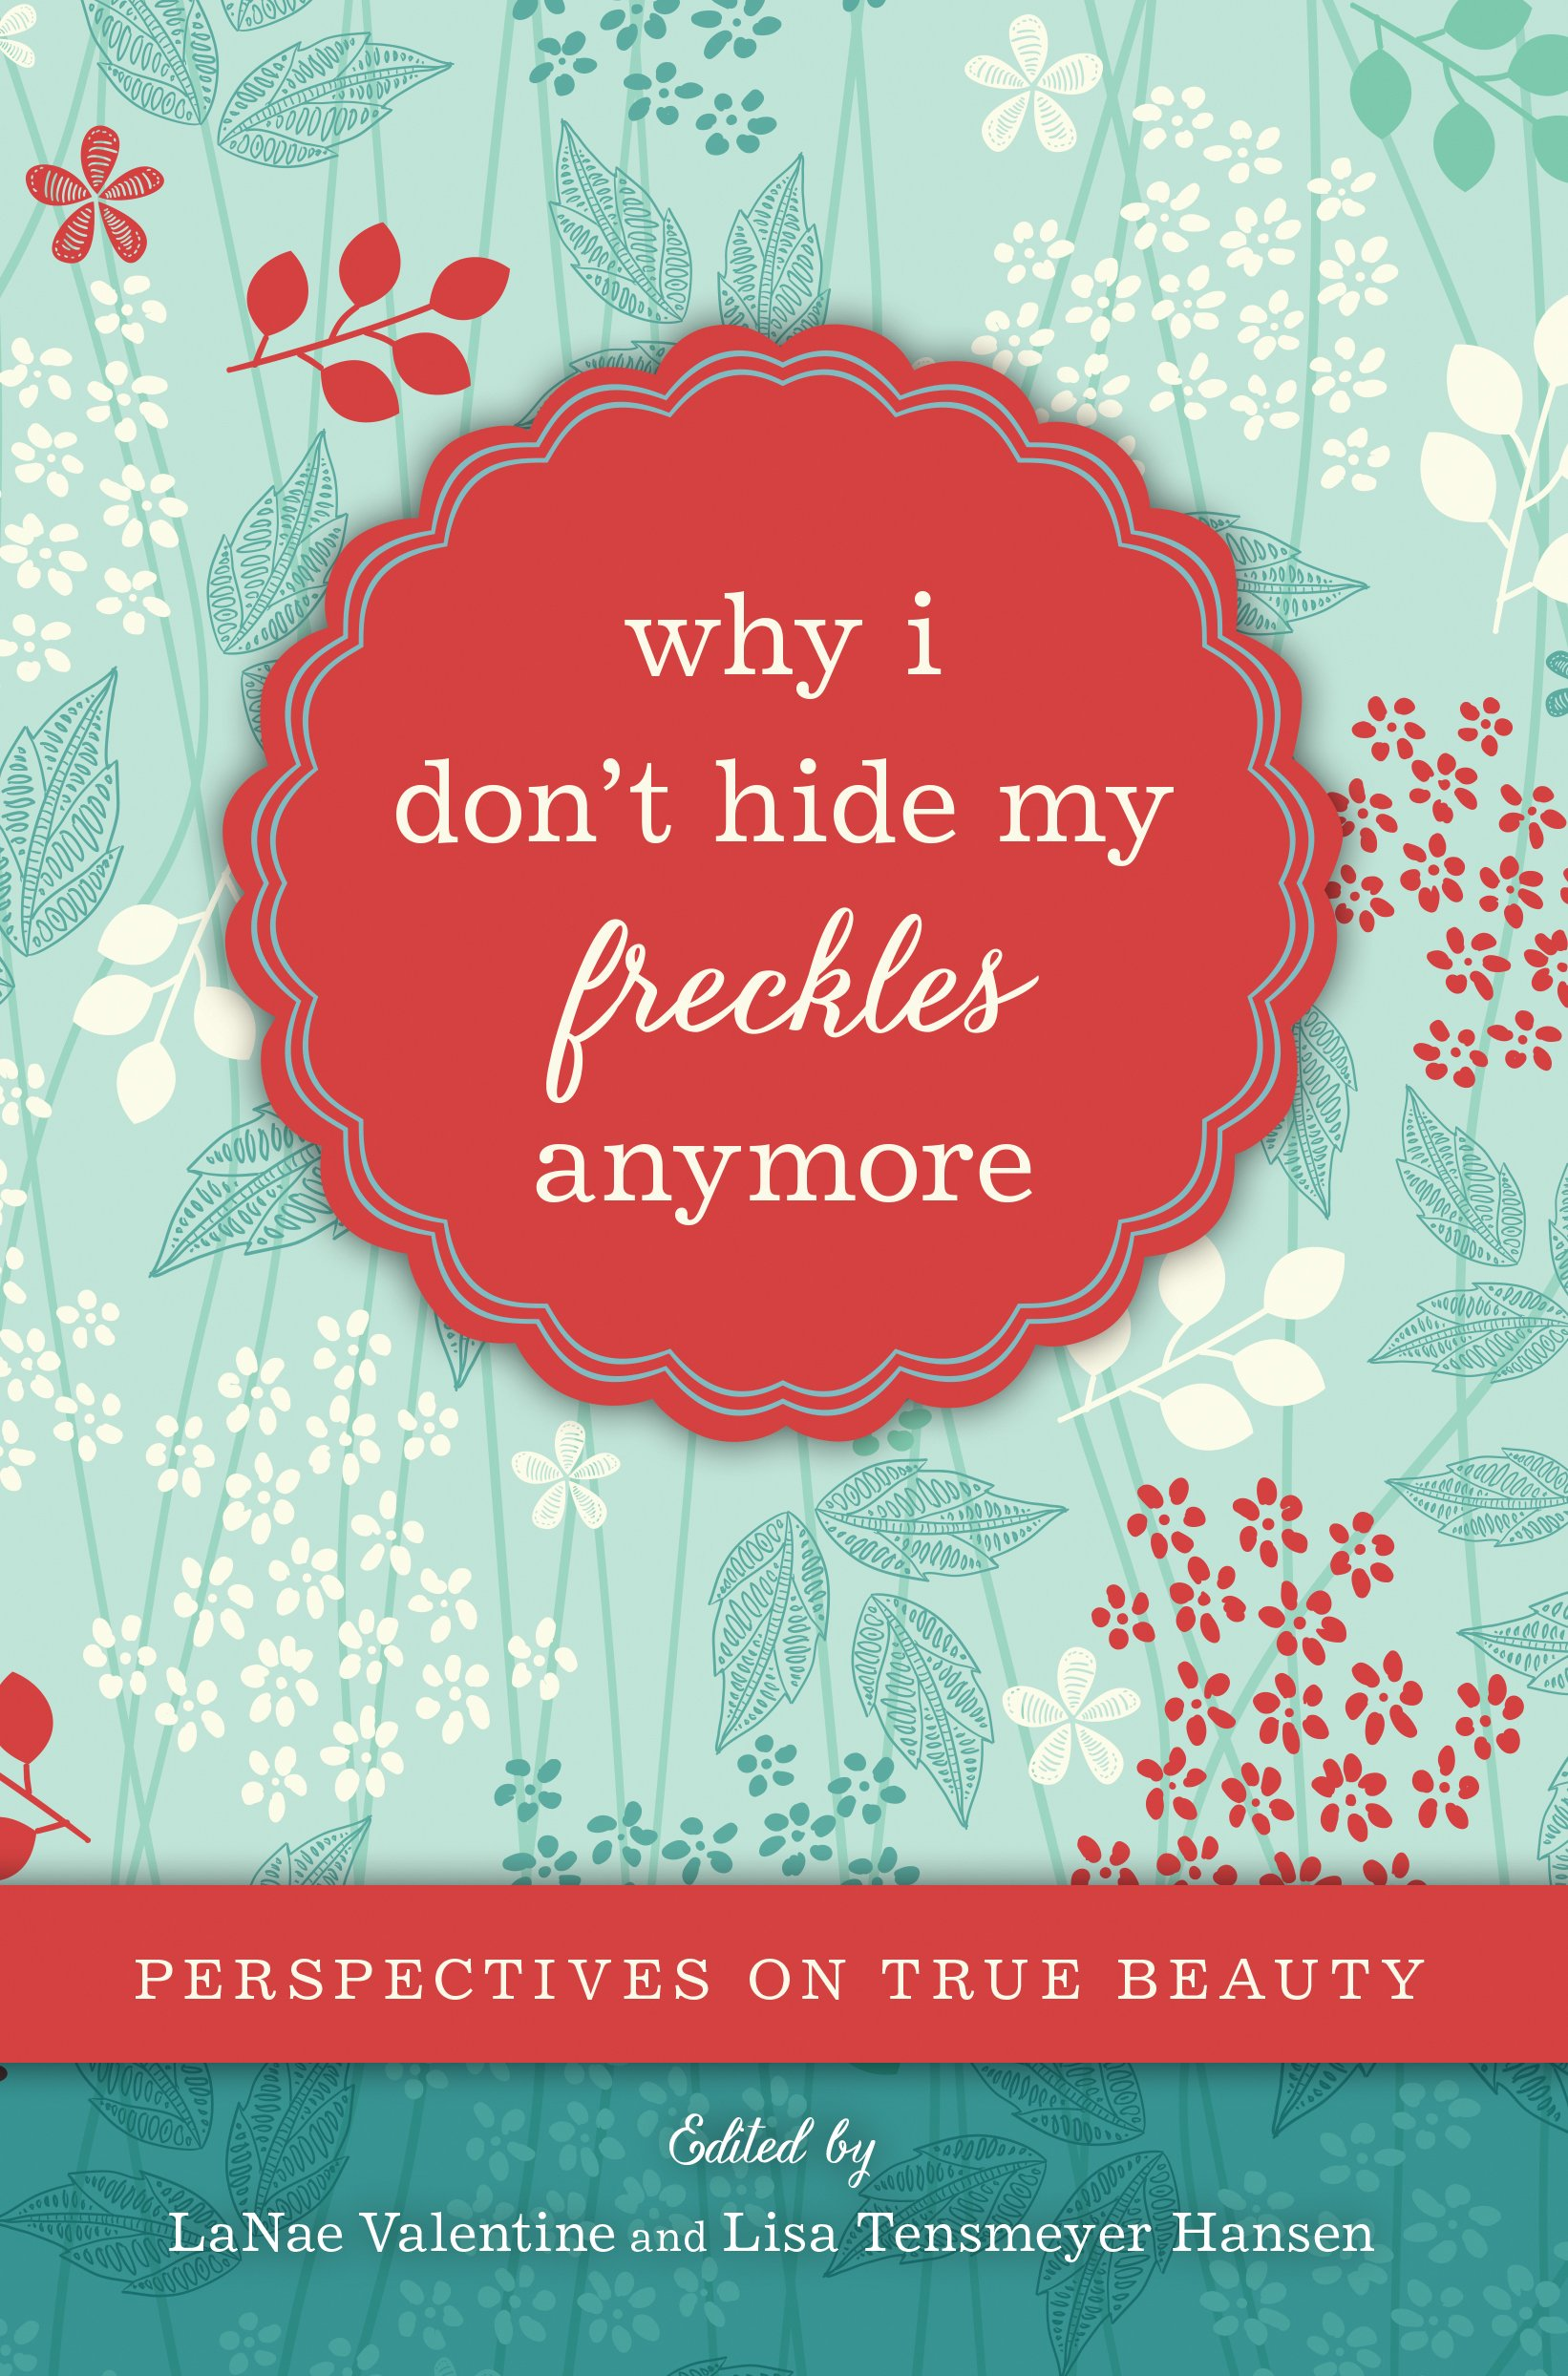 Why I Donu0027t Hide My Freckles Anymore: Perspectives On True Beauty: LaNae  Valentine, Lisa Tensmeyer Hansen: 9781609078065: Amazon.com: Books